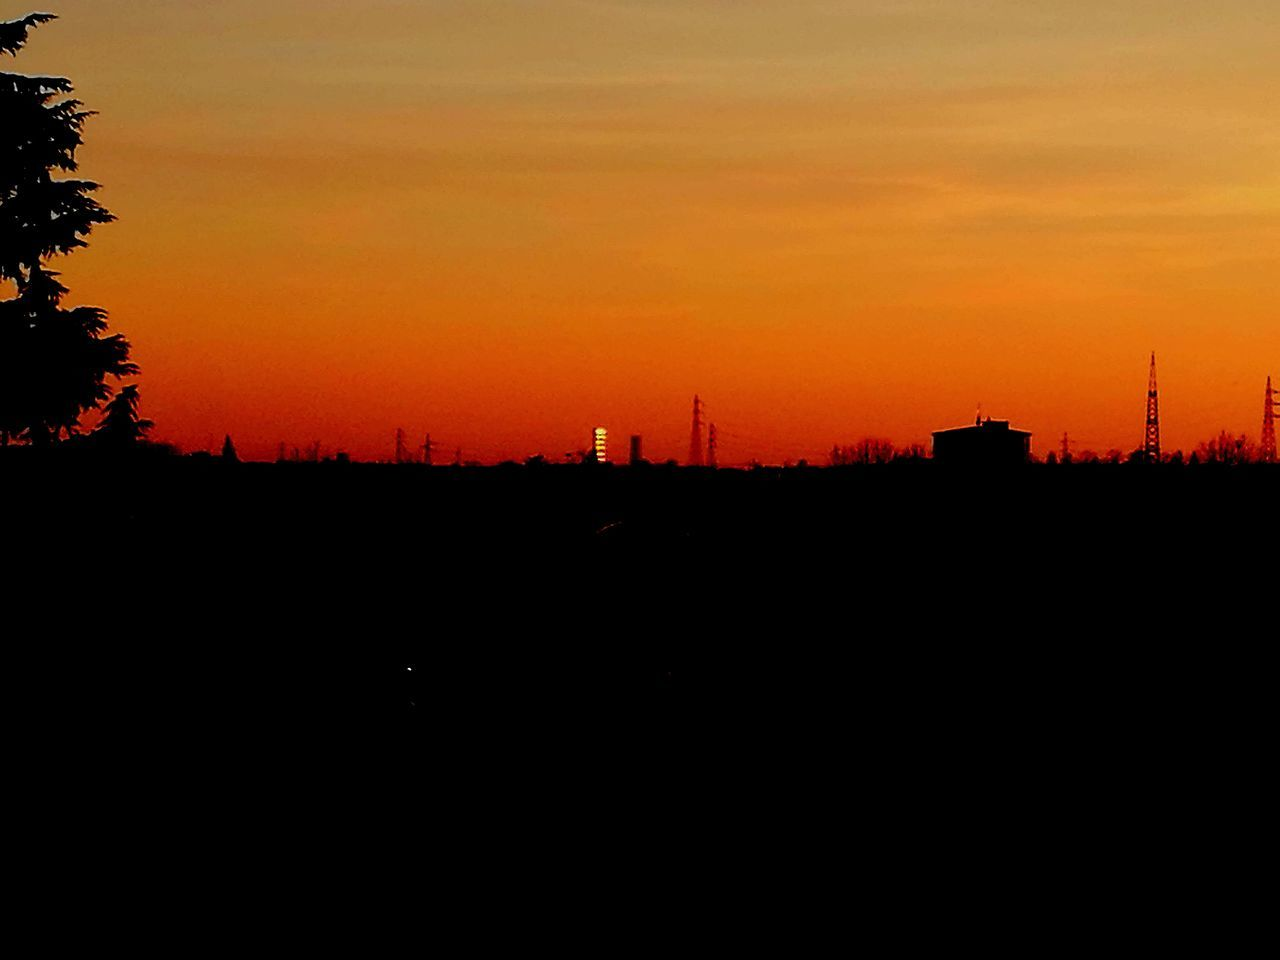 sunset, silhouette, architecture, orange color, built structure, building exterior, no people, nature, sky, beauty in nature, outdoors, city, tree, cityscape